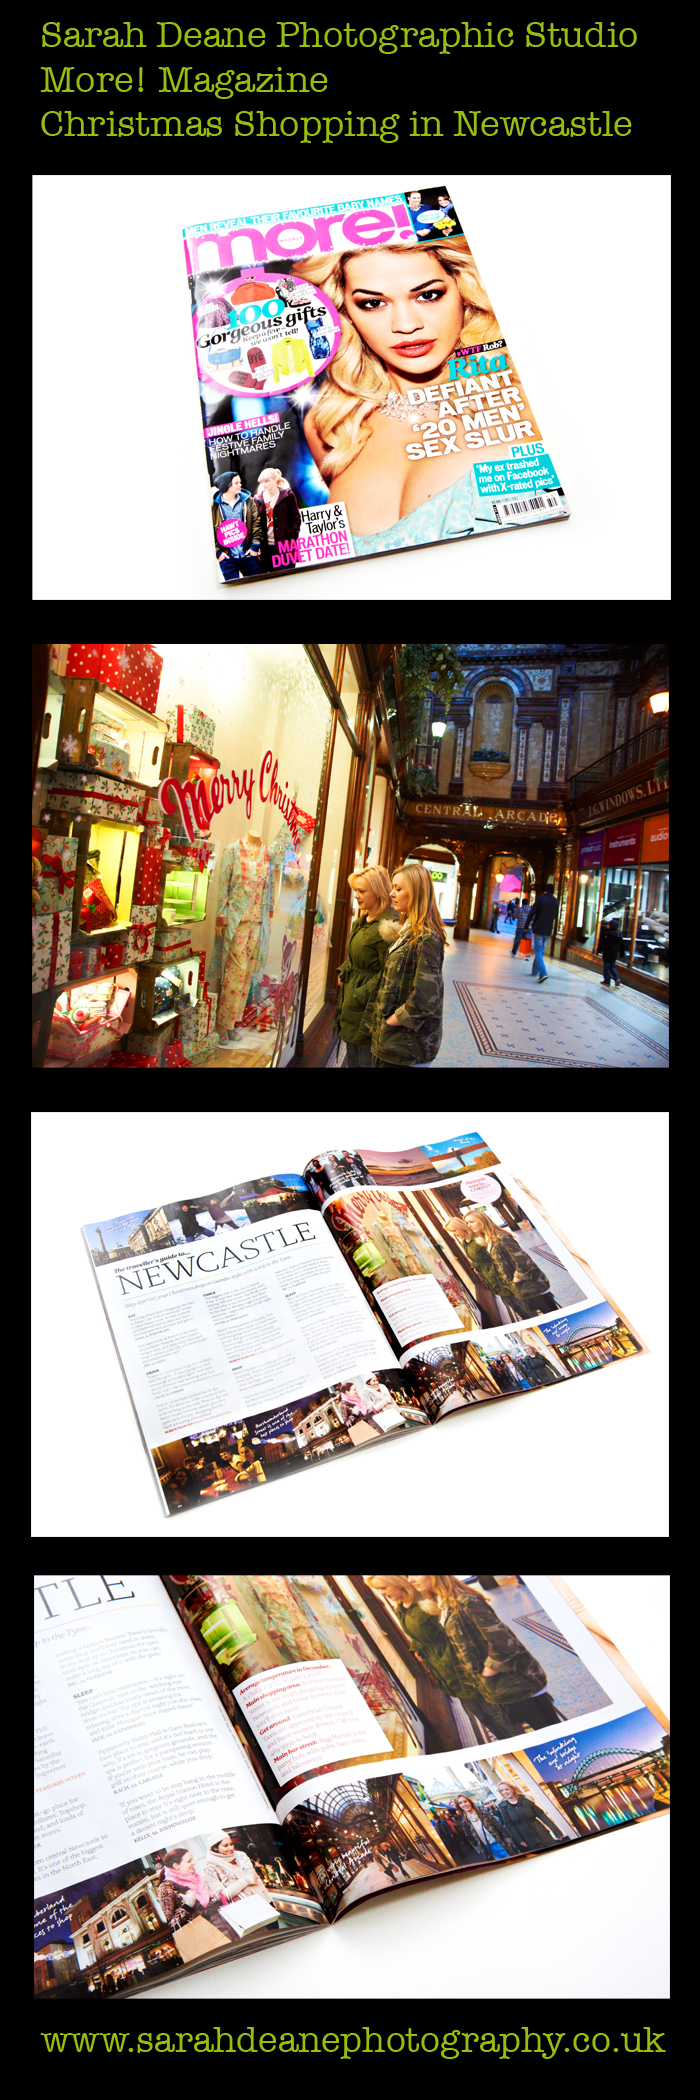 Christmas shopping photography in newcastle upon tyne, for more magazine